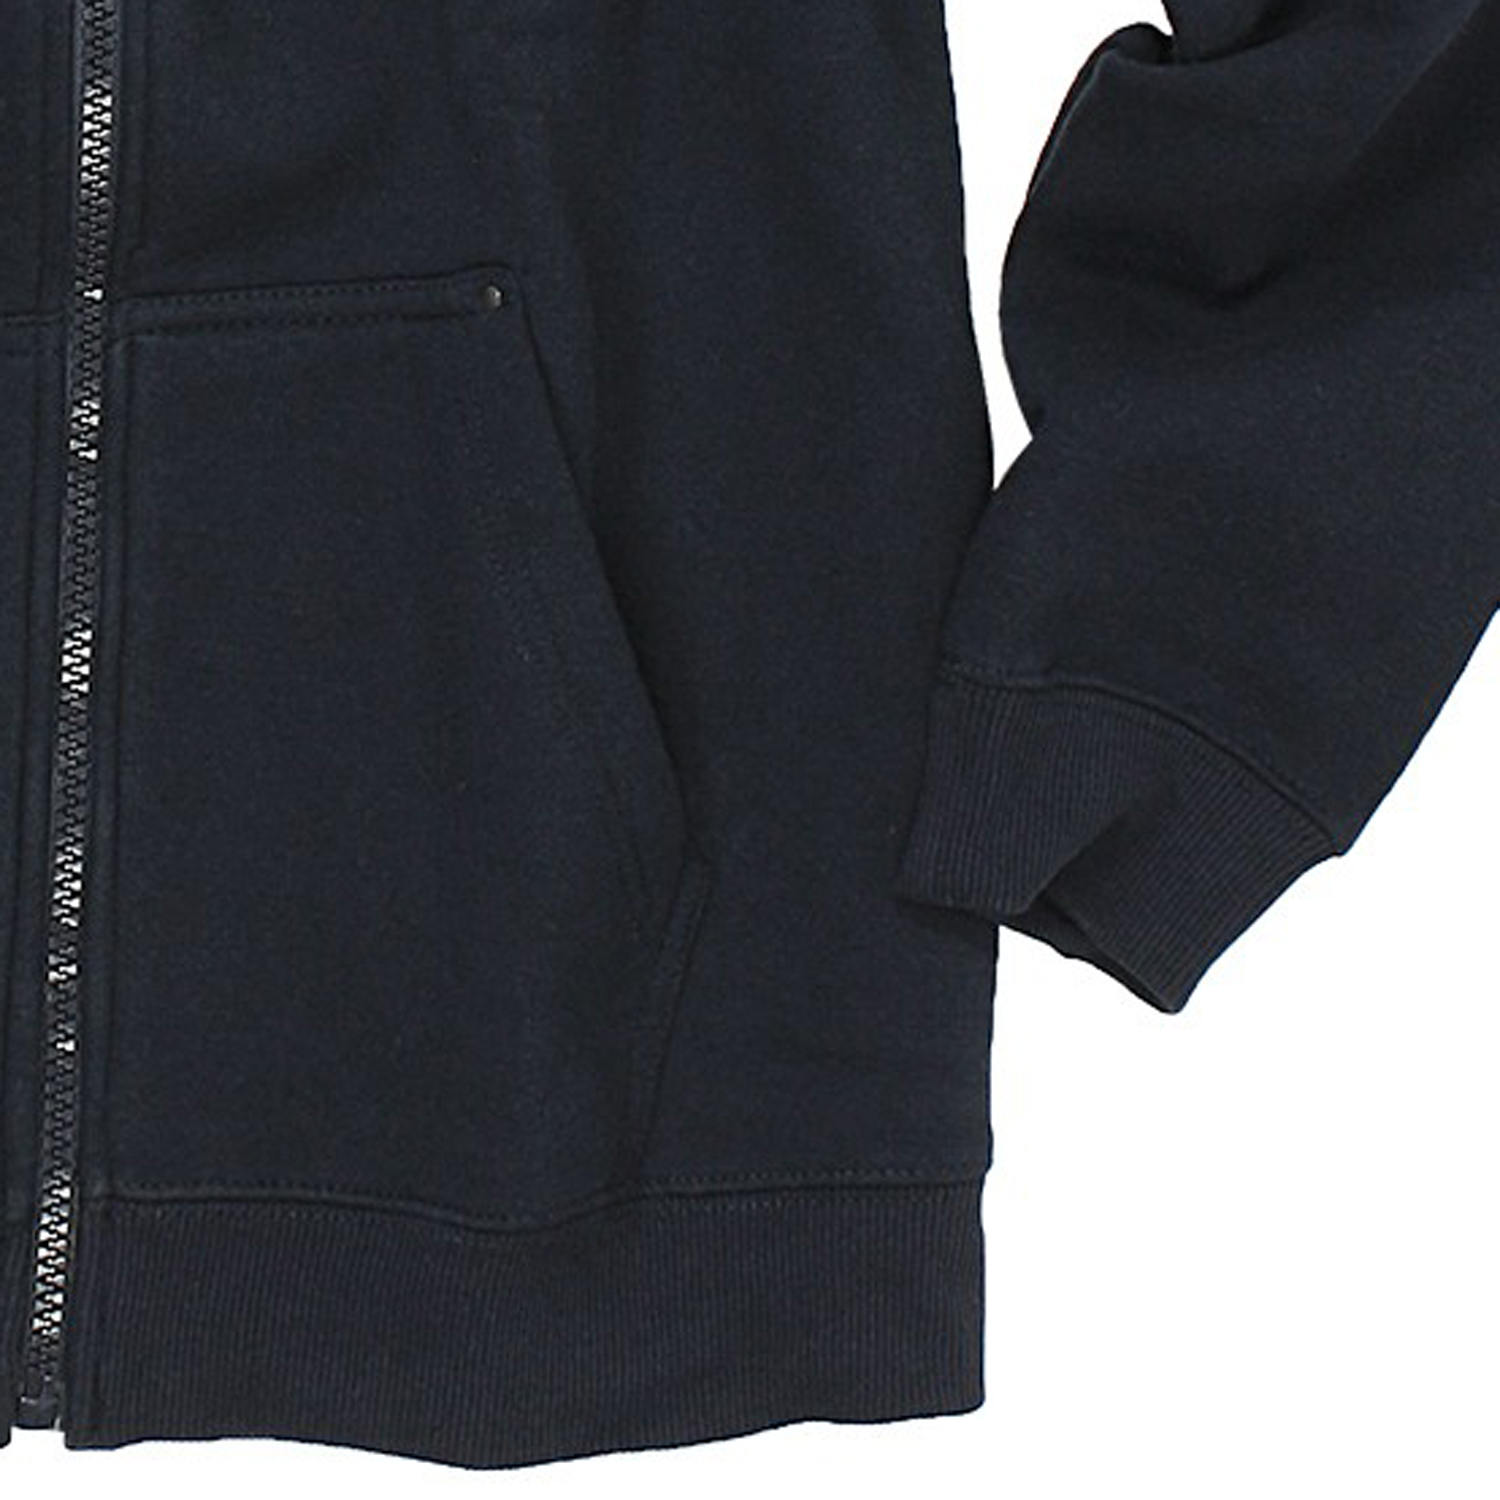 Detail Image to Hoody jacket Modell CANTOR in blue from Rockford in king sizes up to 8XL